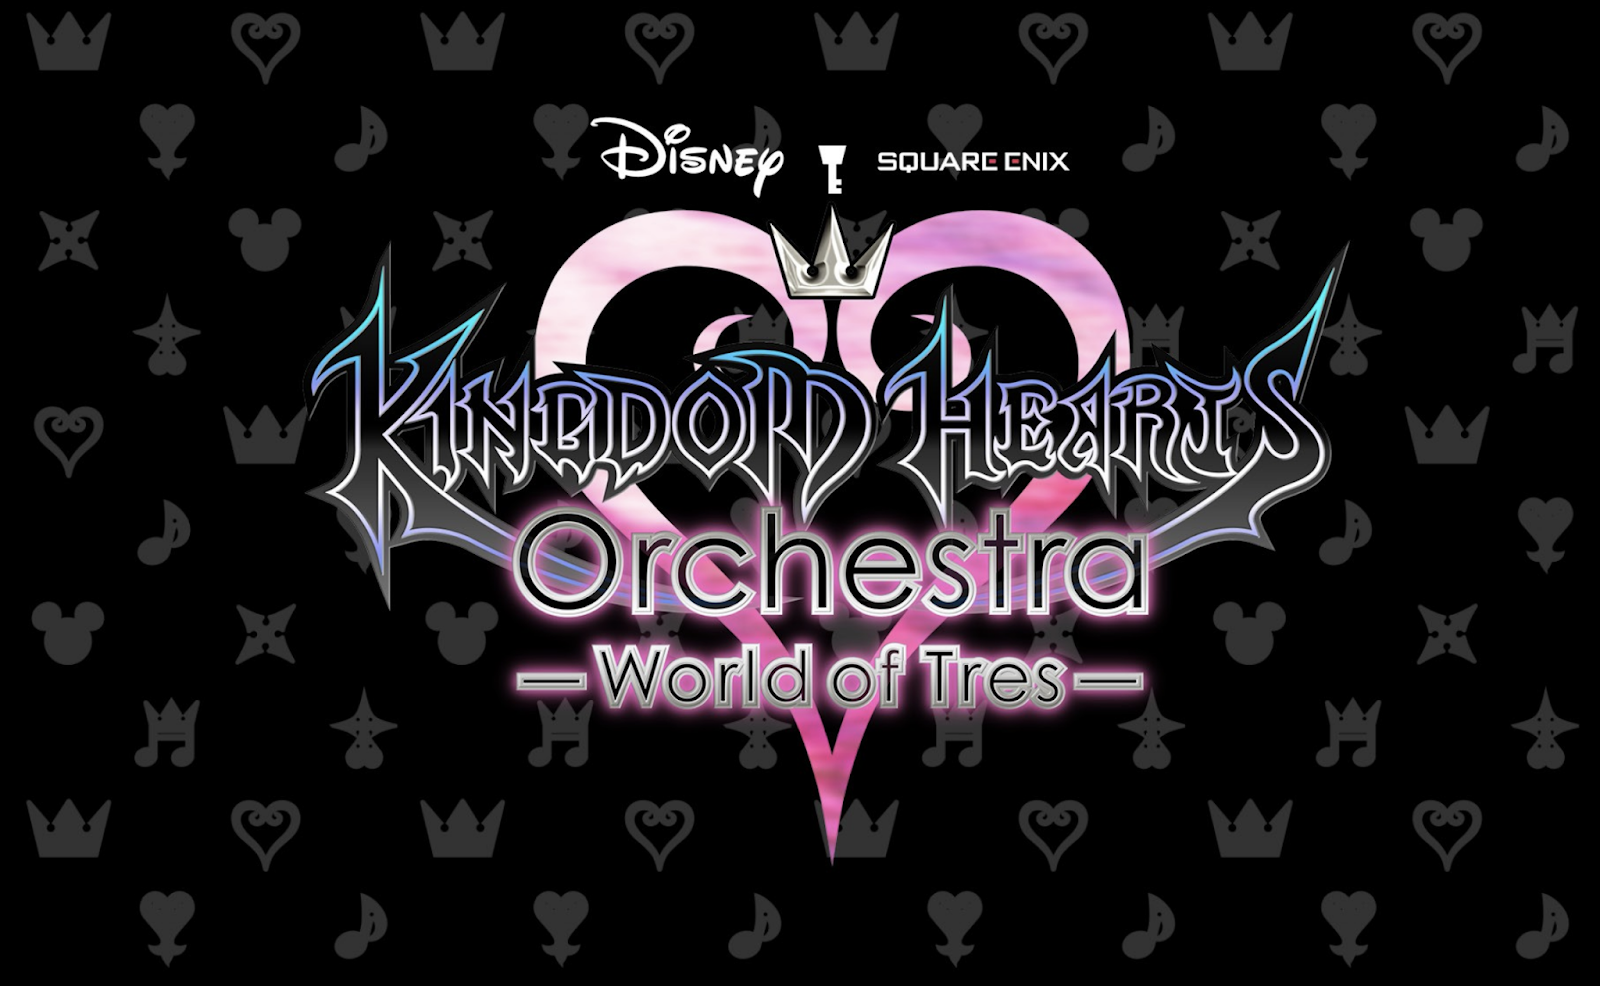 Kingdom Hearts Orchestra -World of Tres- Dates Announced.